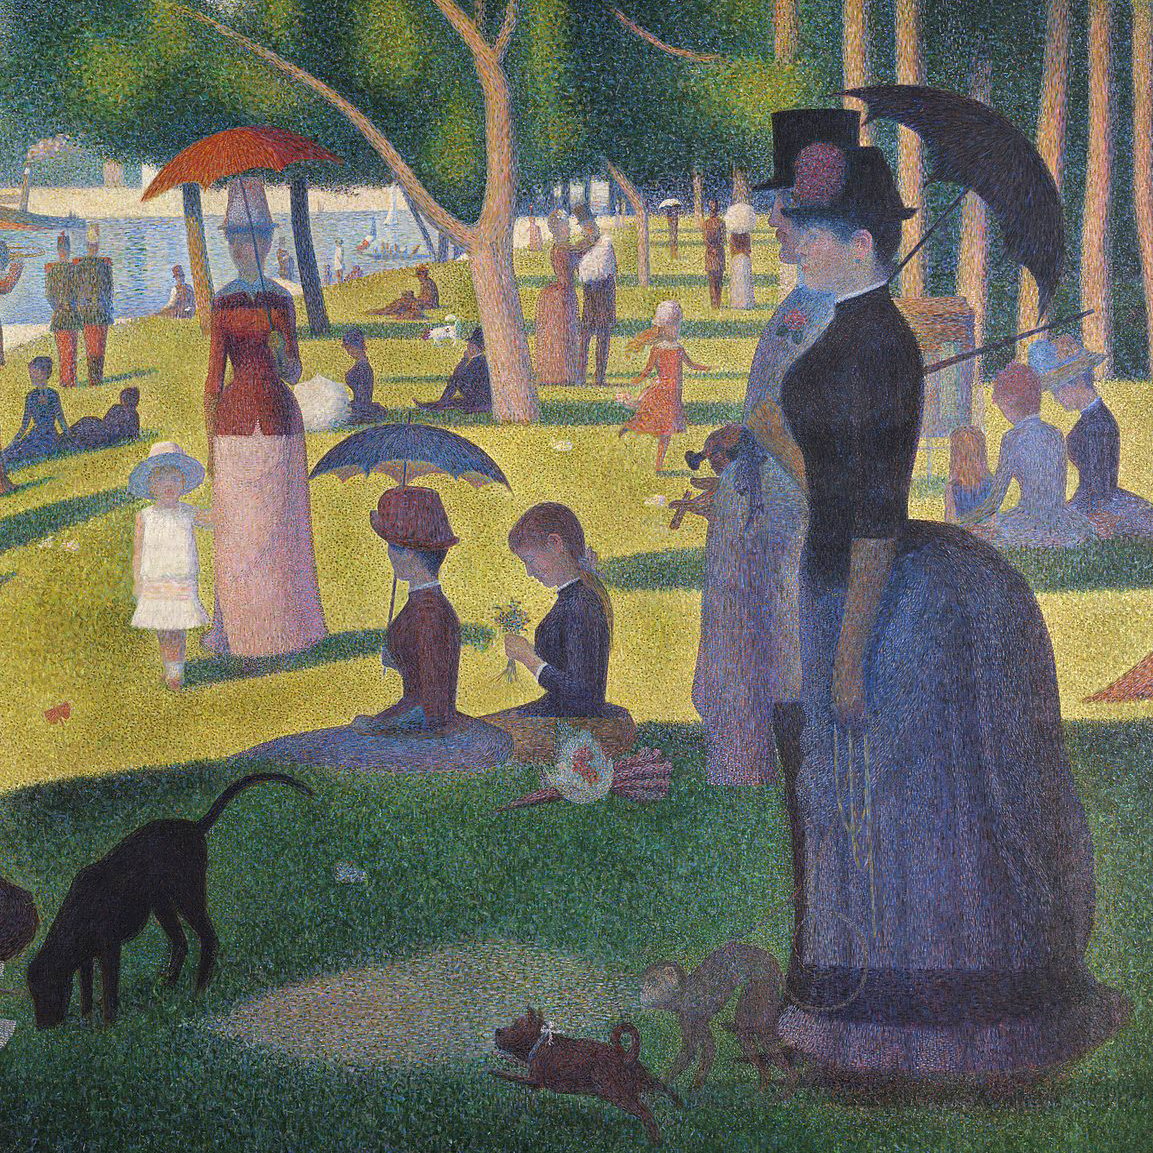 Georges Seurat,   A Sunday Afternoon on the Island of La Grande Jatte,  1884-1886 // October 2018